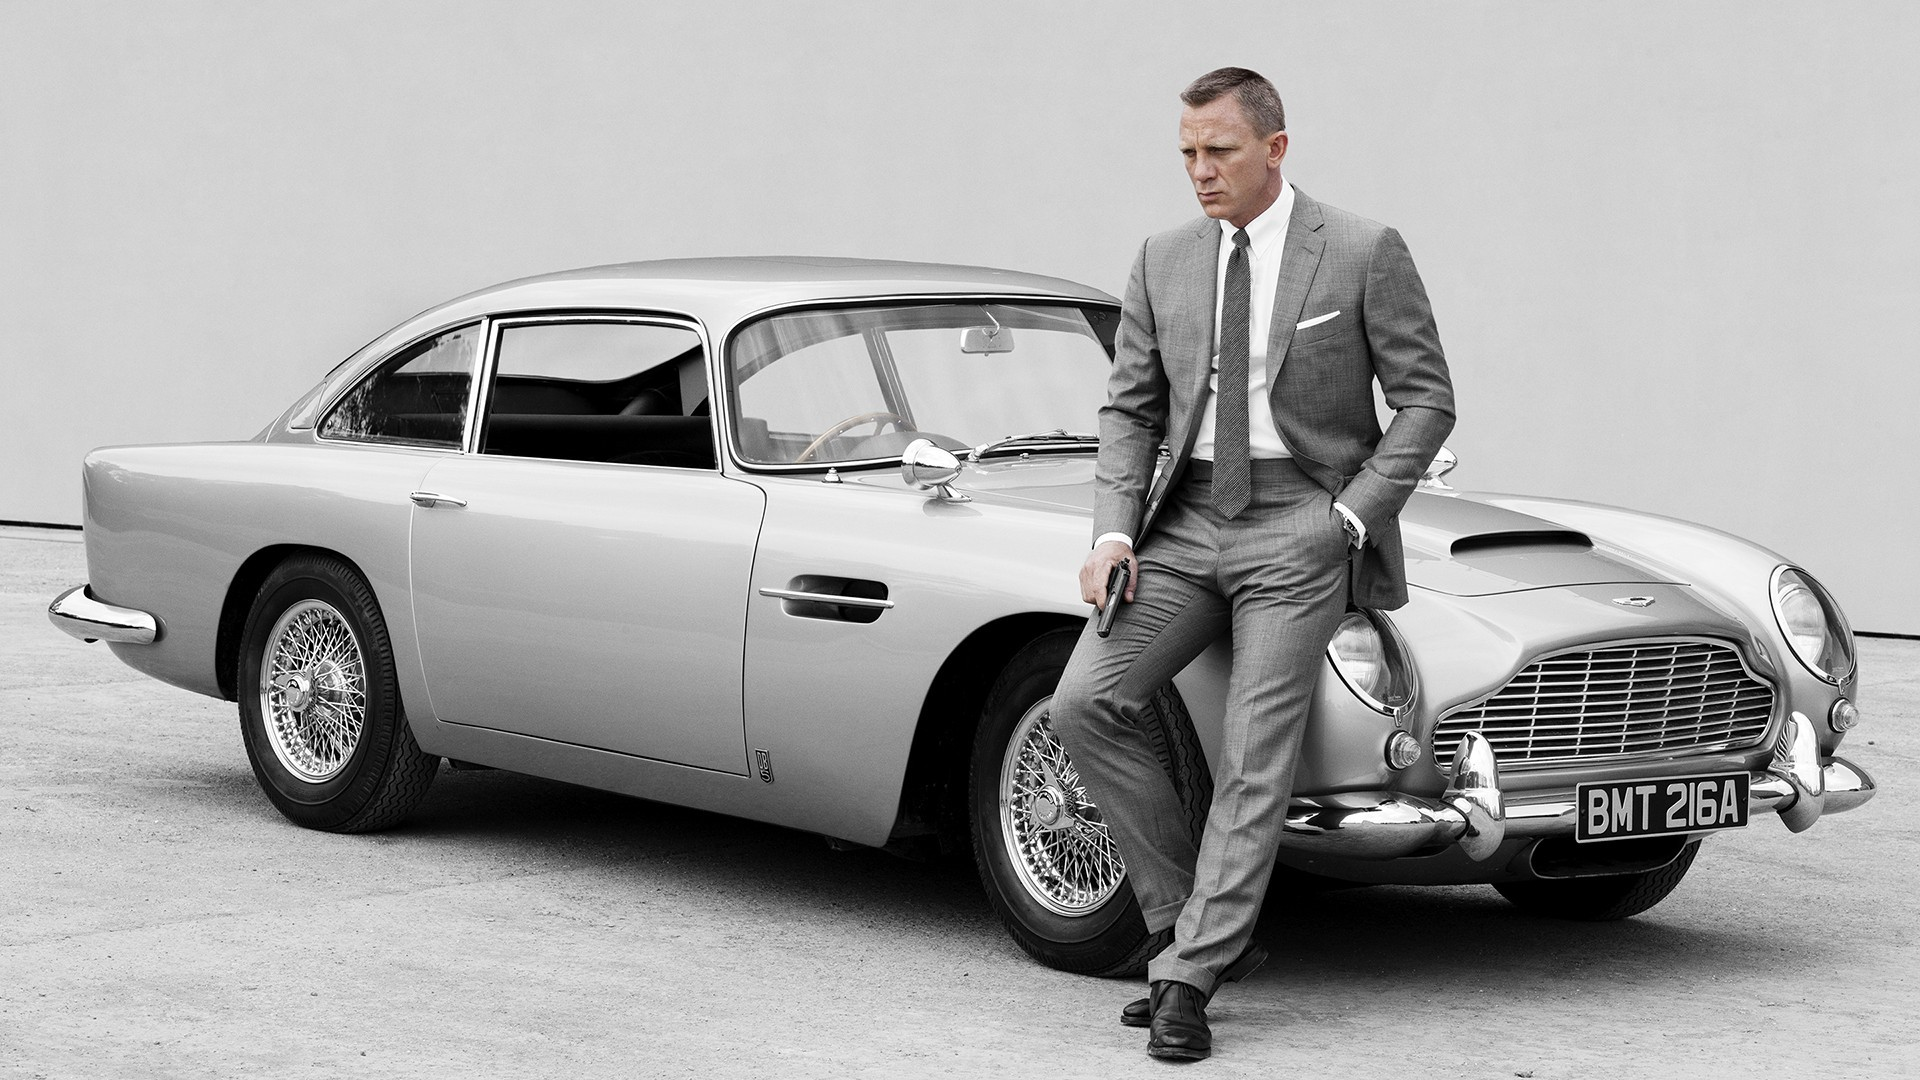 Gold-Plated Model Of James Bond's Aston Martin DB5 Heading To Auction - Pursuitist